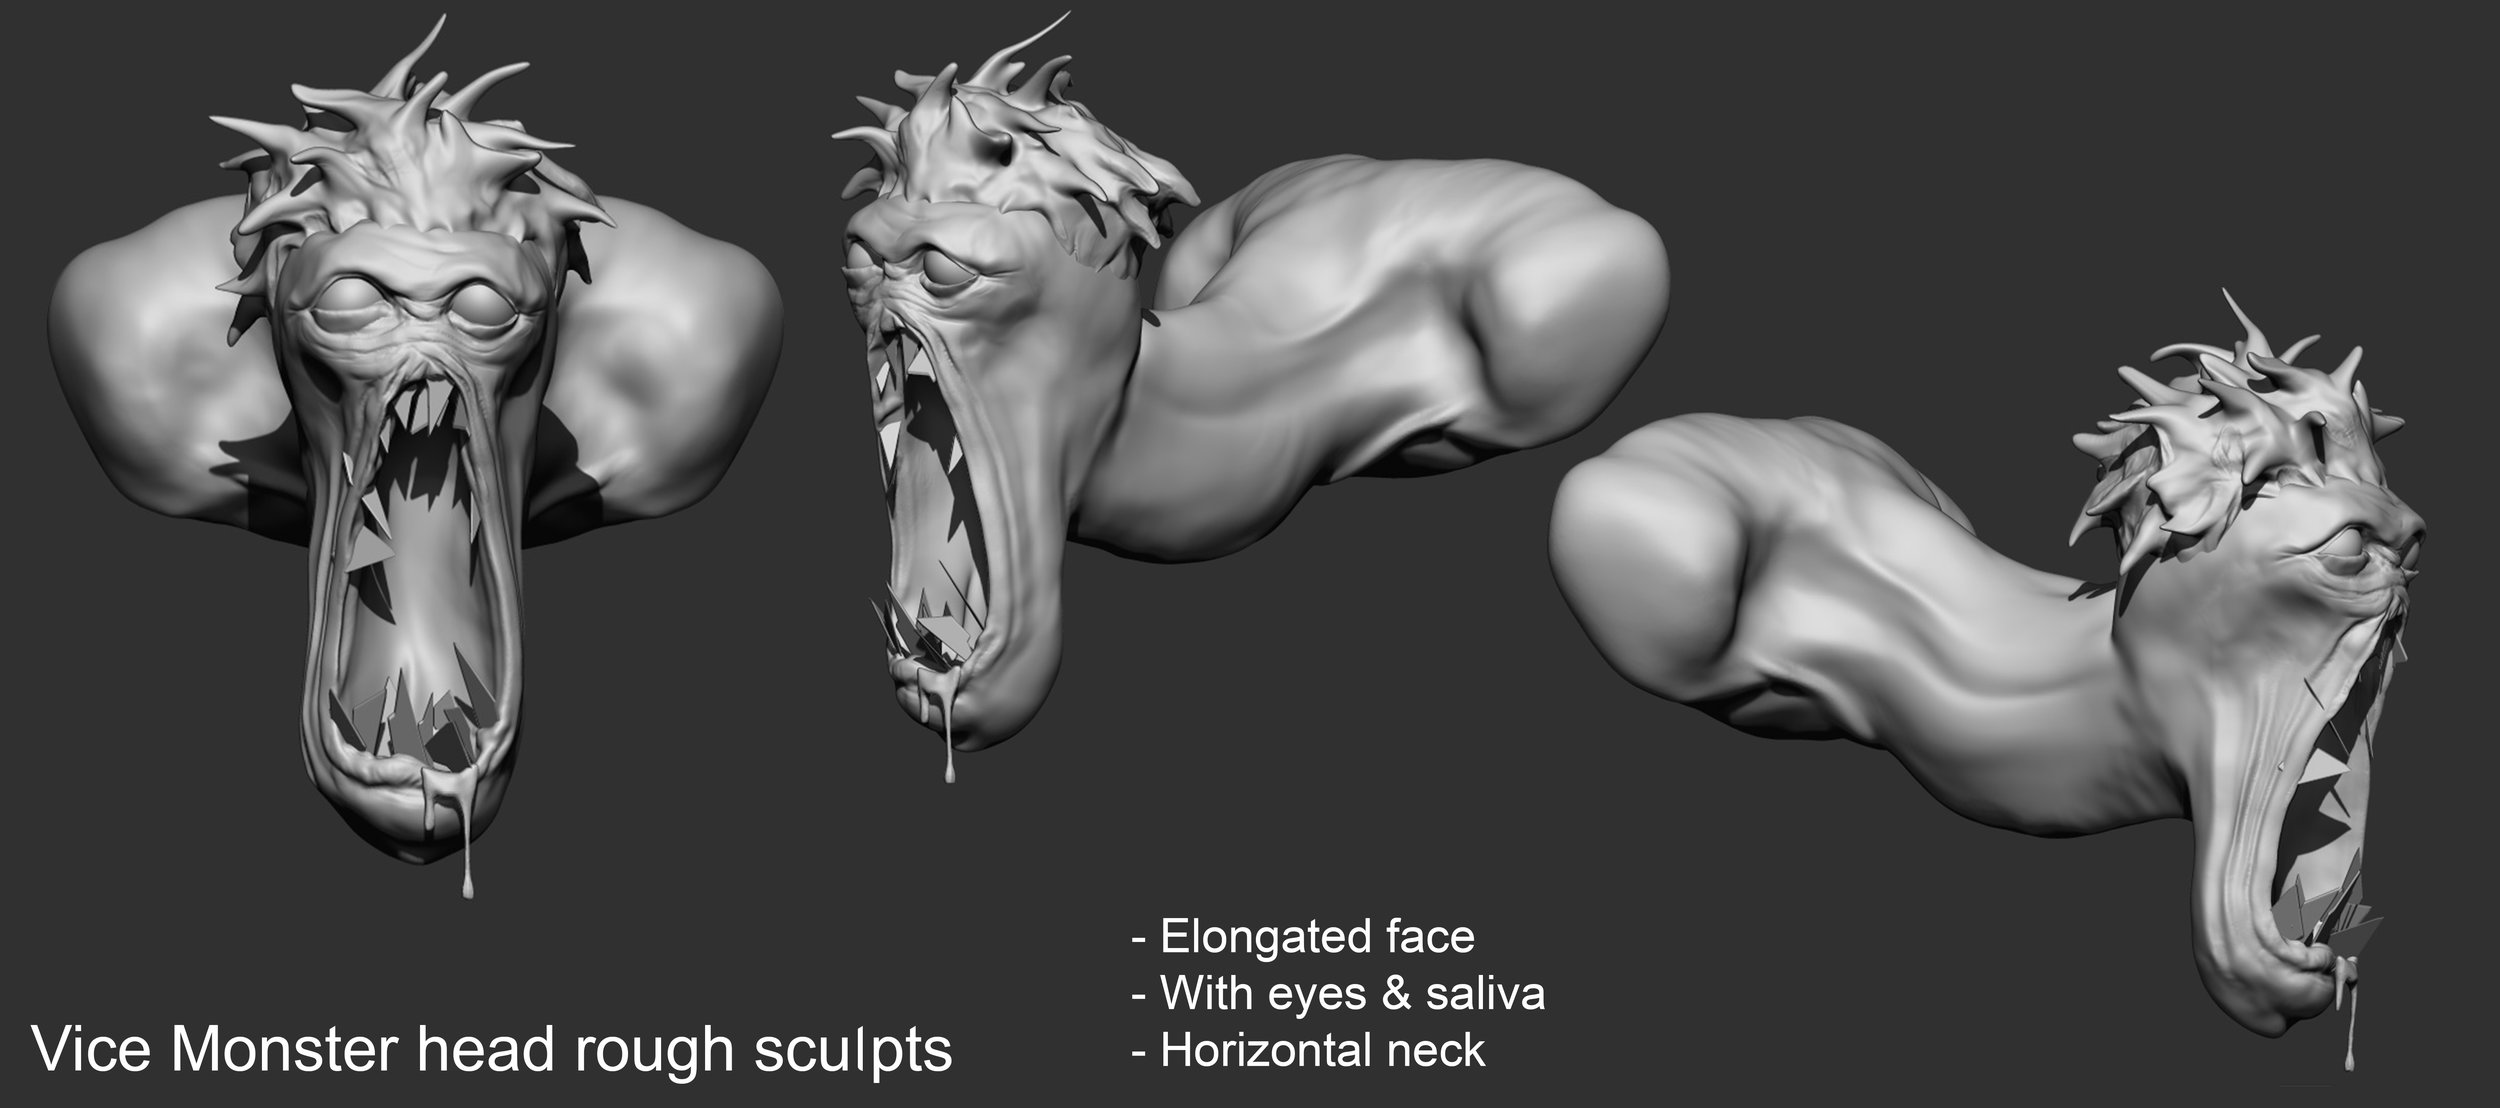 vice monster sculpts.jpg